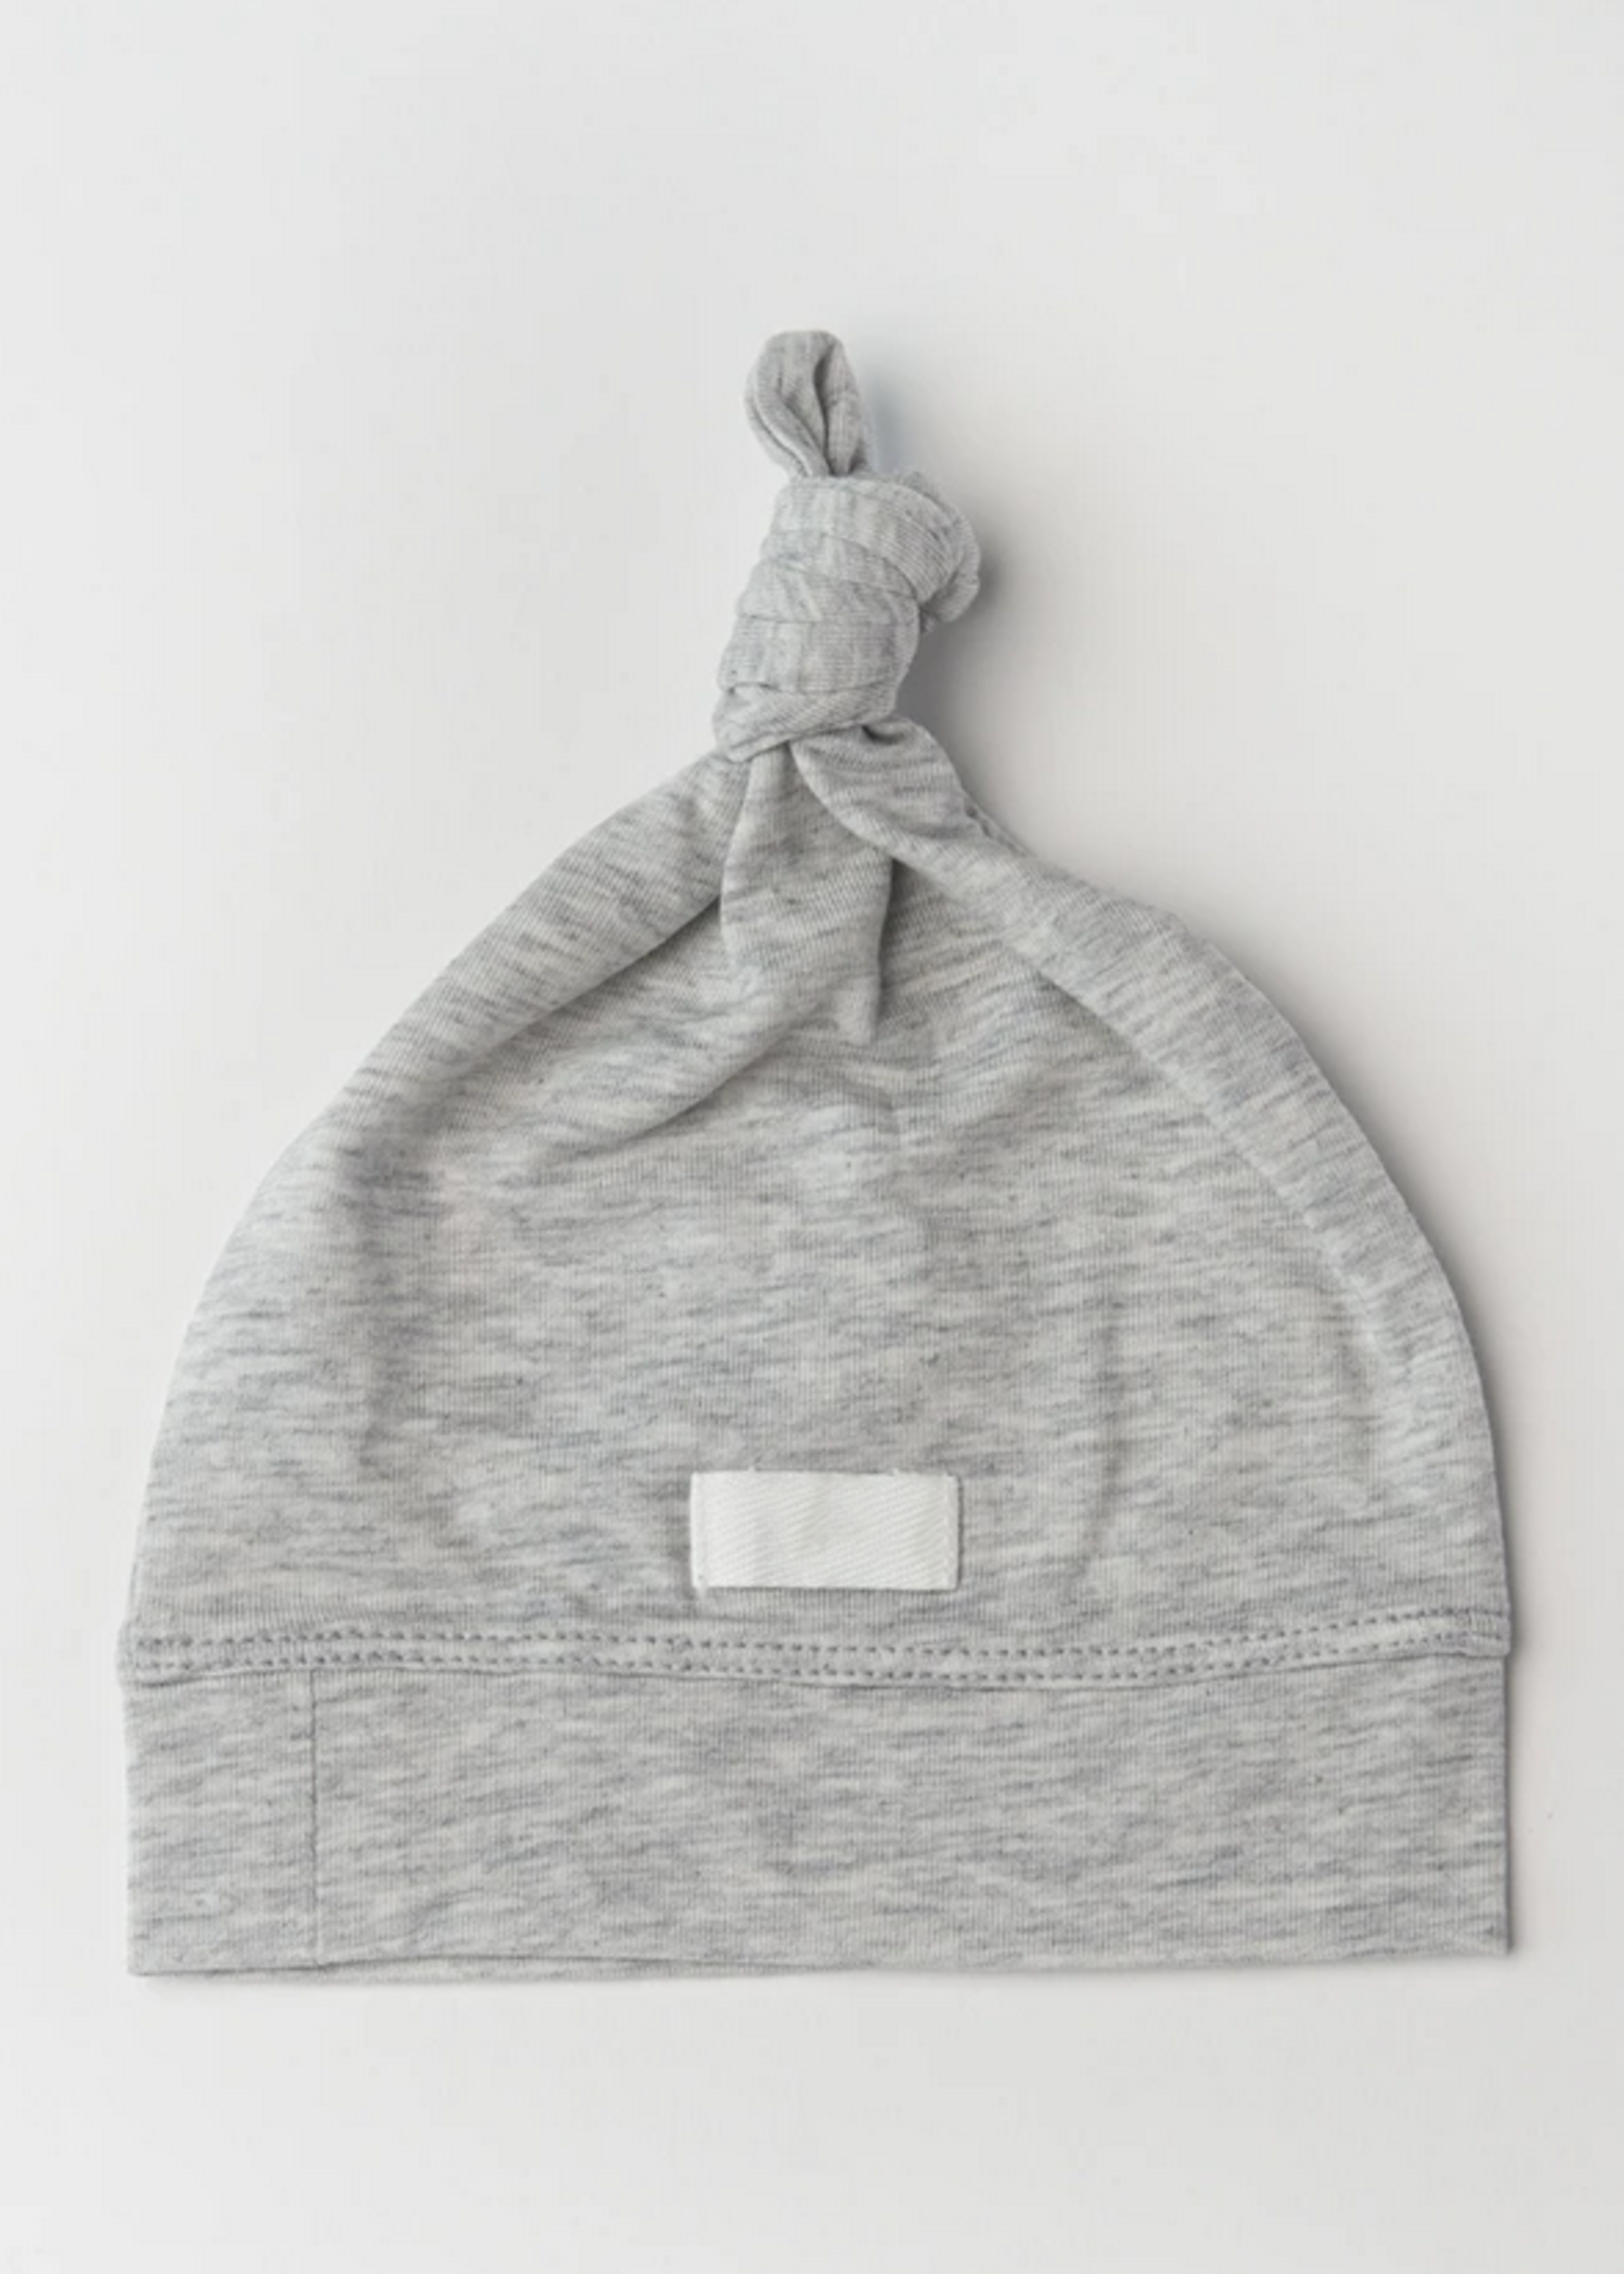 Elitaire Petite Top Knot Beanie in Heather Grey